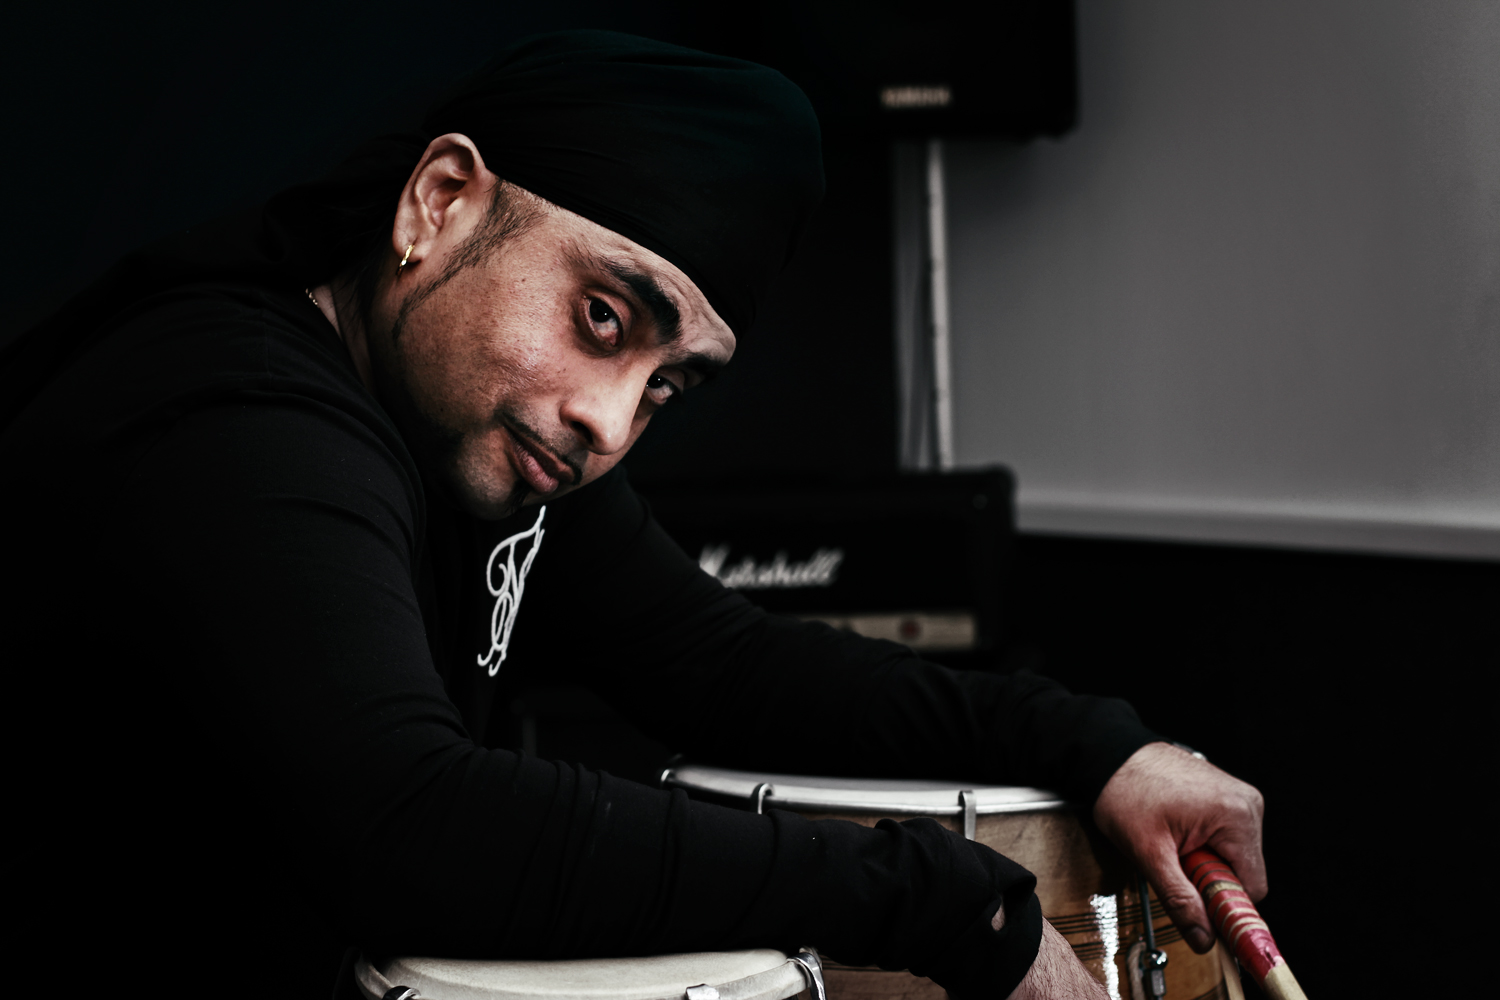 Bhangra Star Tubsy to perform live at the Birmingham Inspiration Awards